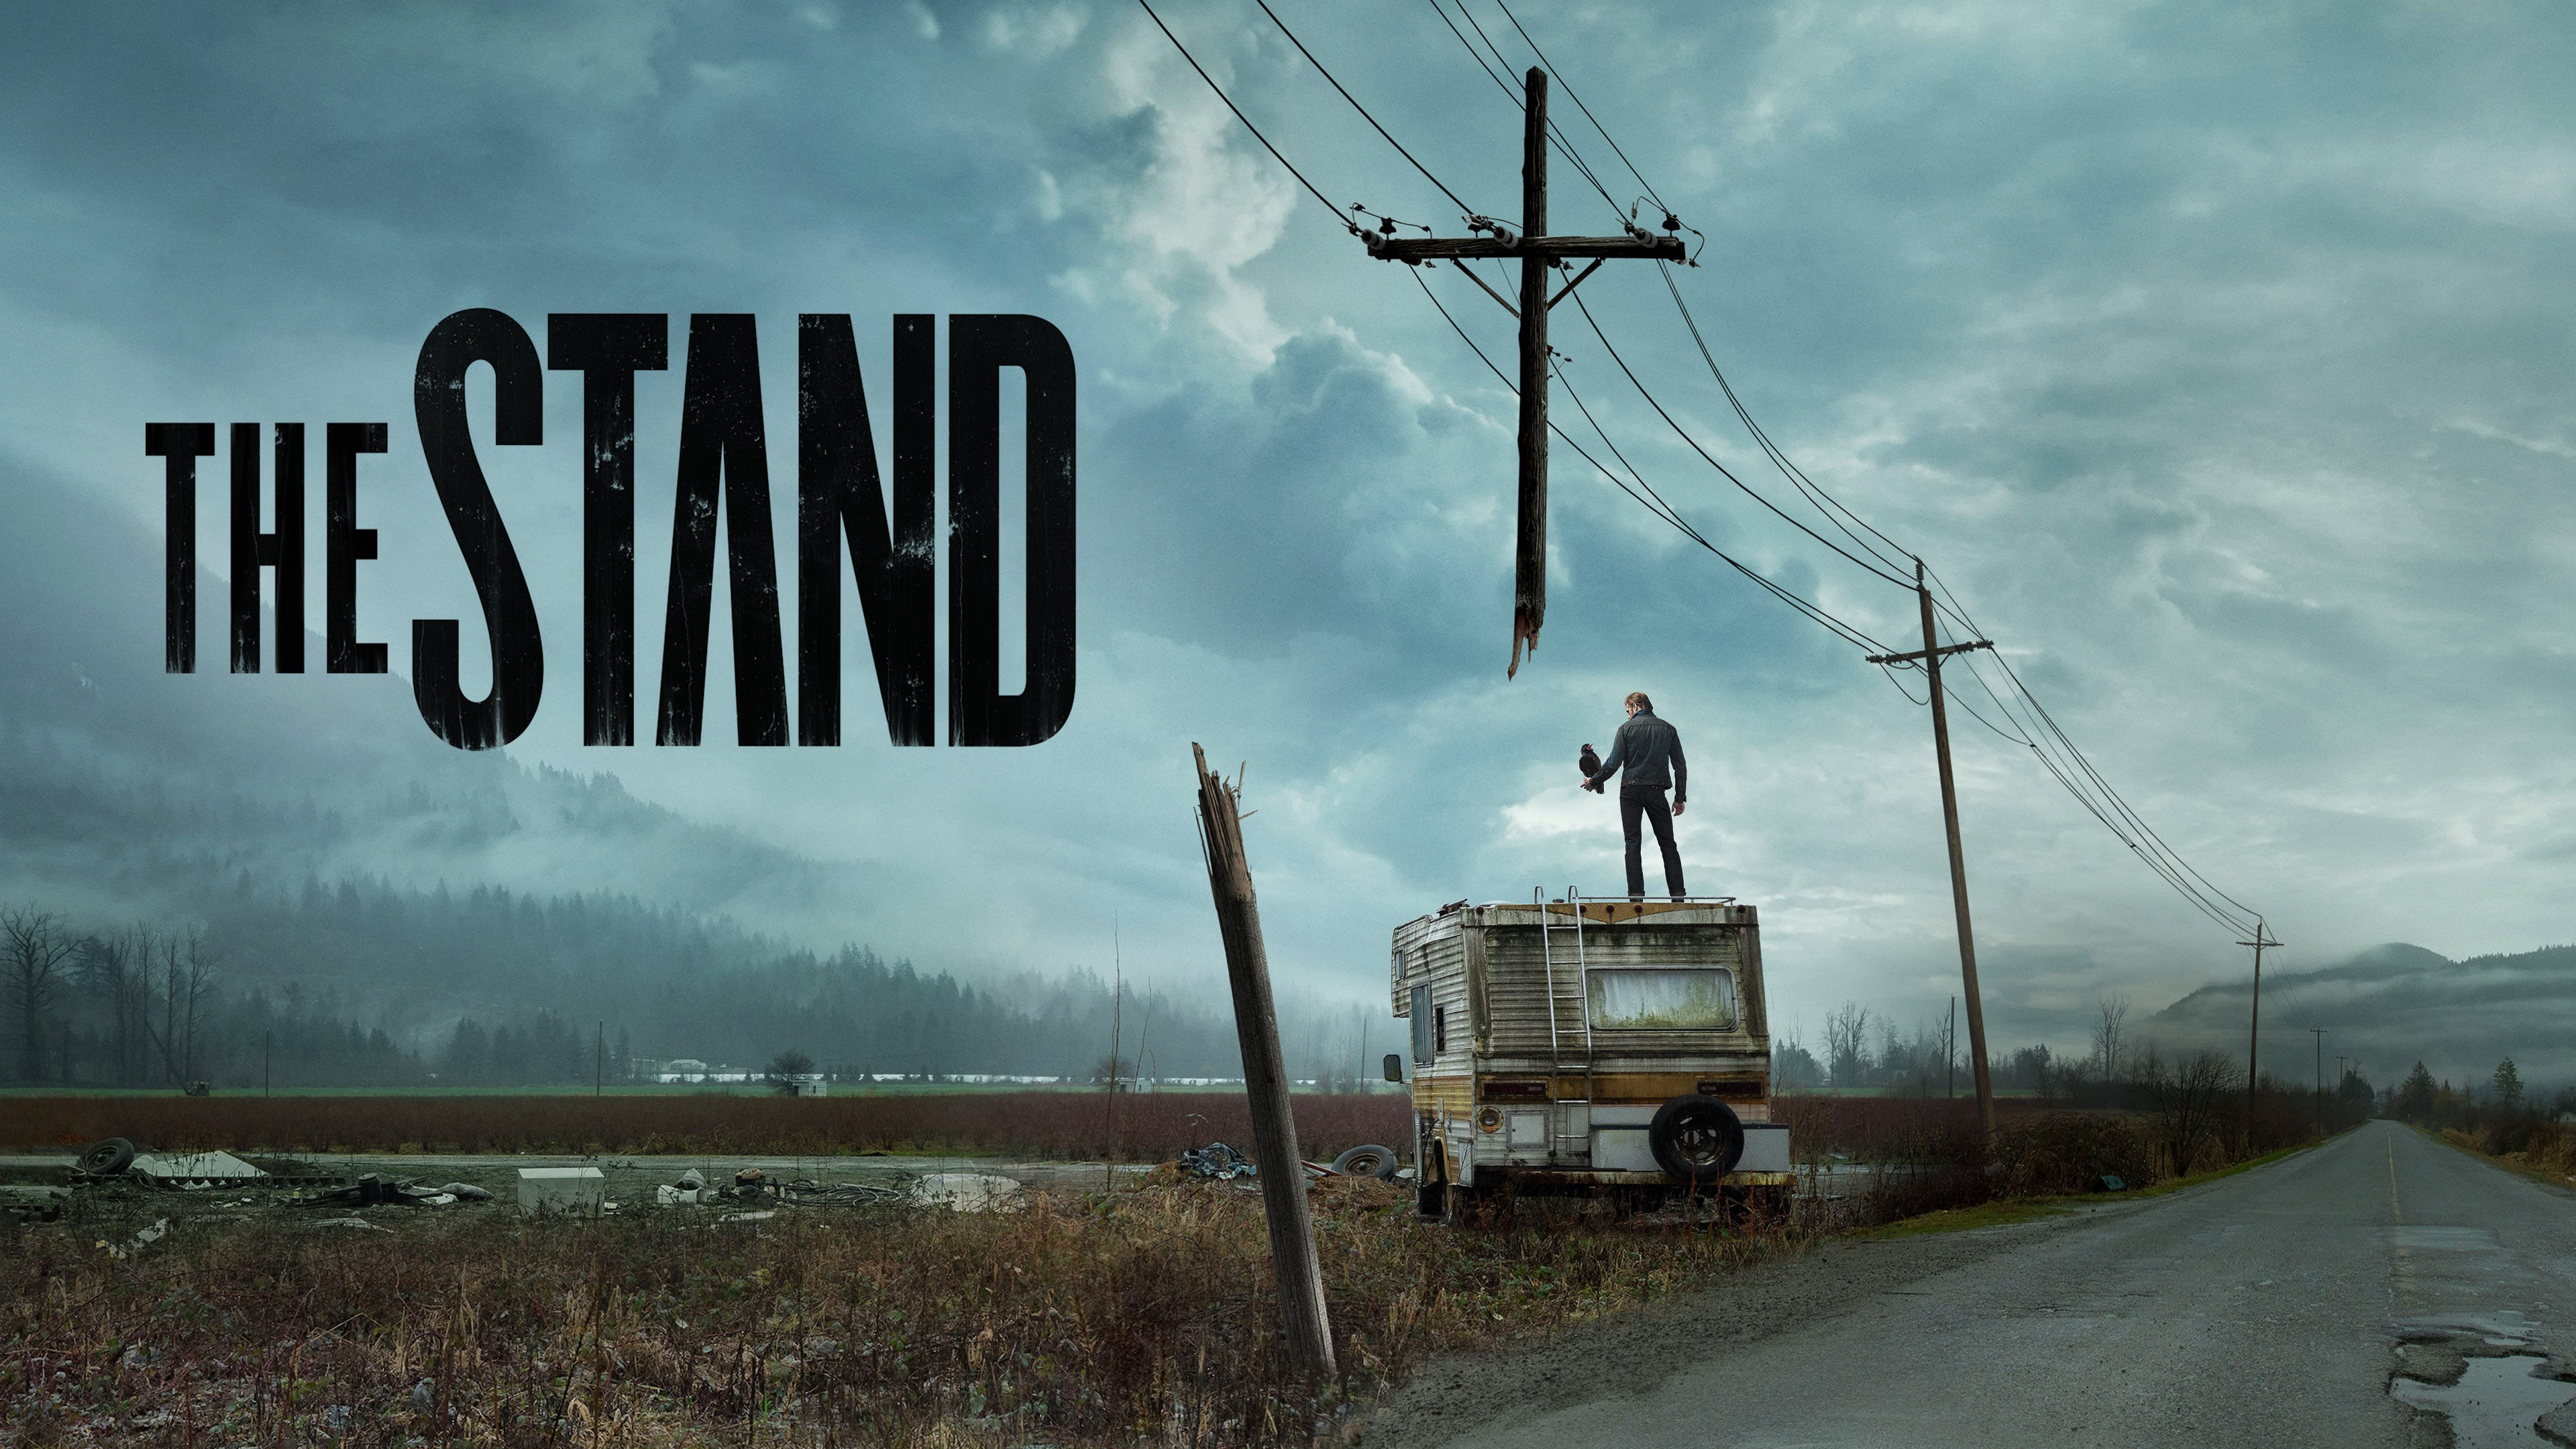 Watch [FREE] The Stand (2020) S01E01 𝒮𝑒𝒶𝓈𝑜𝓃 1 Episode 1 (Full —  Episodes) — On CBS All Access | by H Usn Ik Od I Ssealo | 1x1 | The Stand  (2020) 𝒮𝑒𝒶𝓈𝑜𝓃 1 Episode 1 (Full Series TV) | Dec, 2020 | Medium